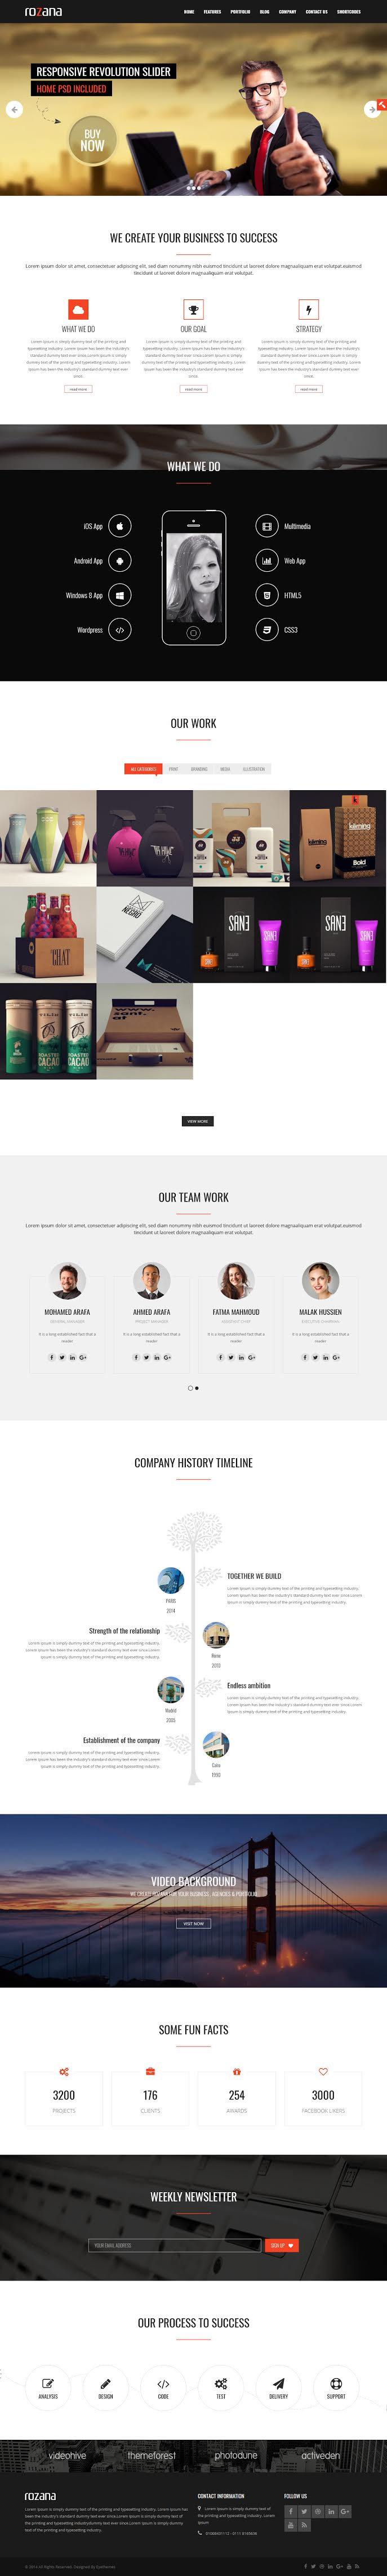 Rozana - Best Coming Soon and Under Construction Premium WordPress Themes and Templates